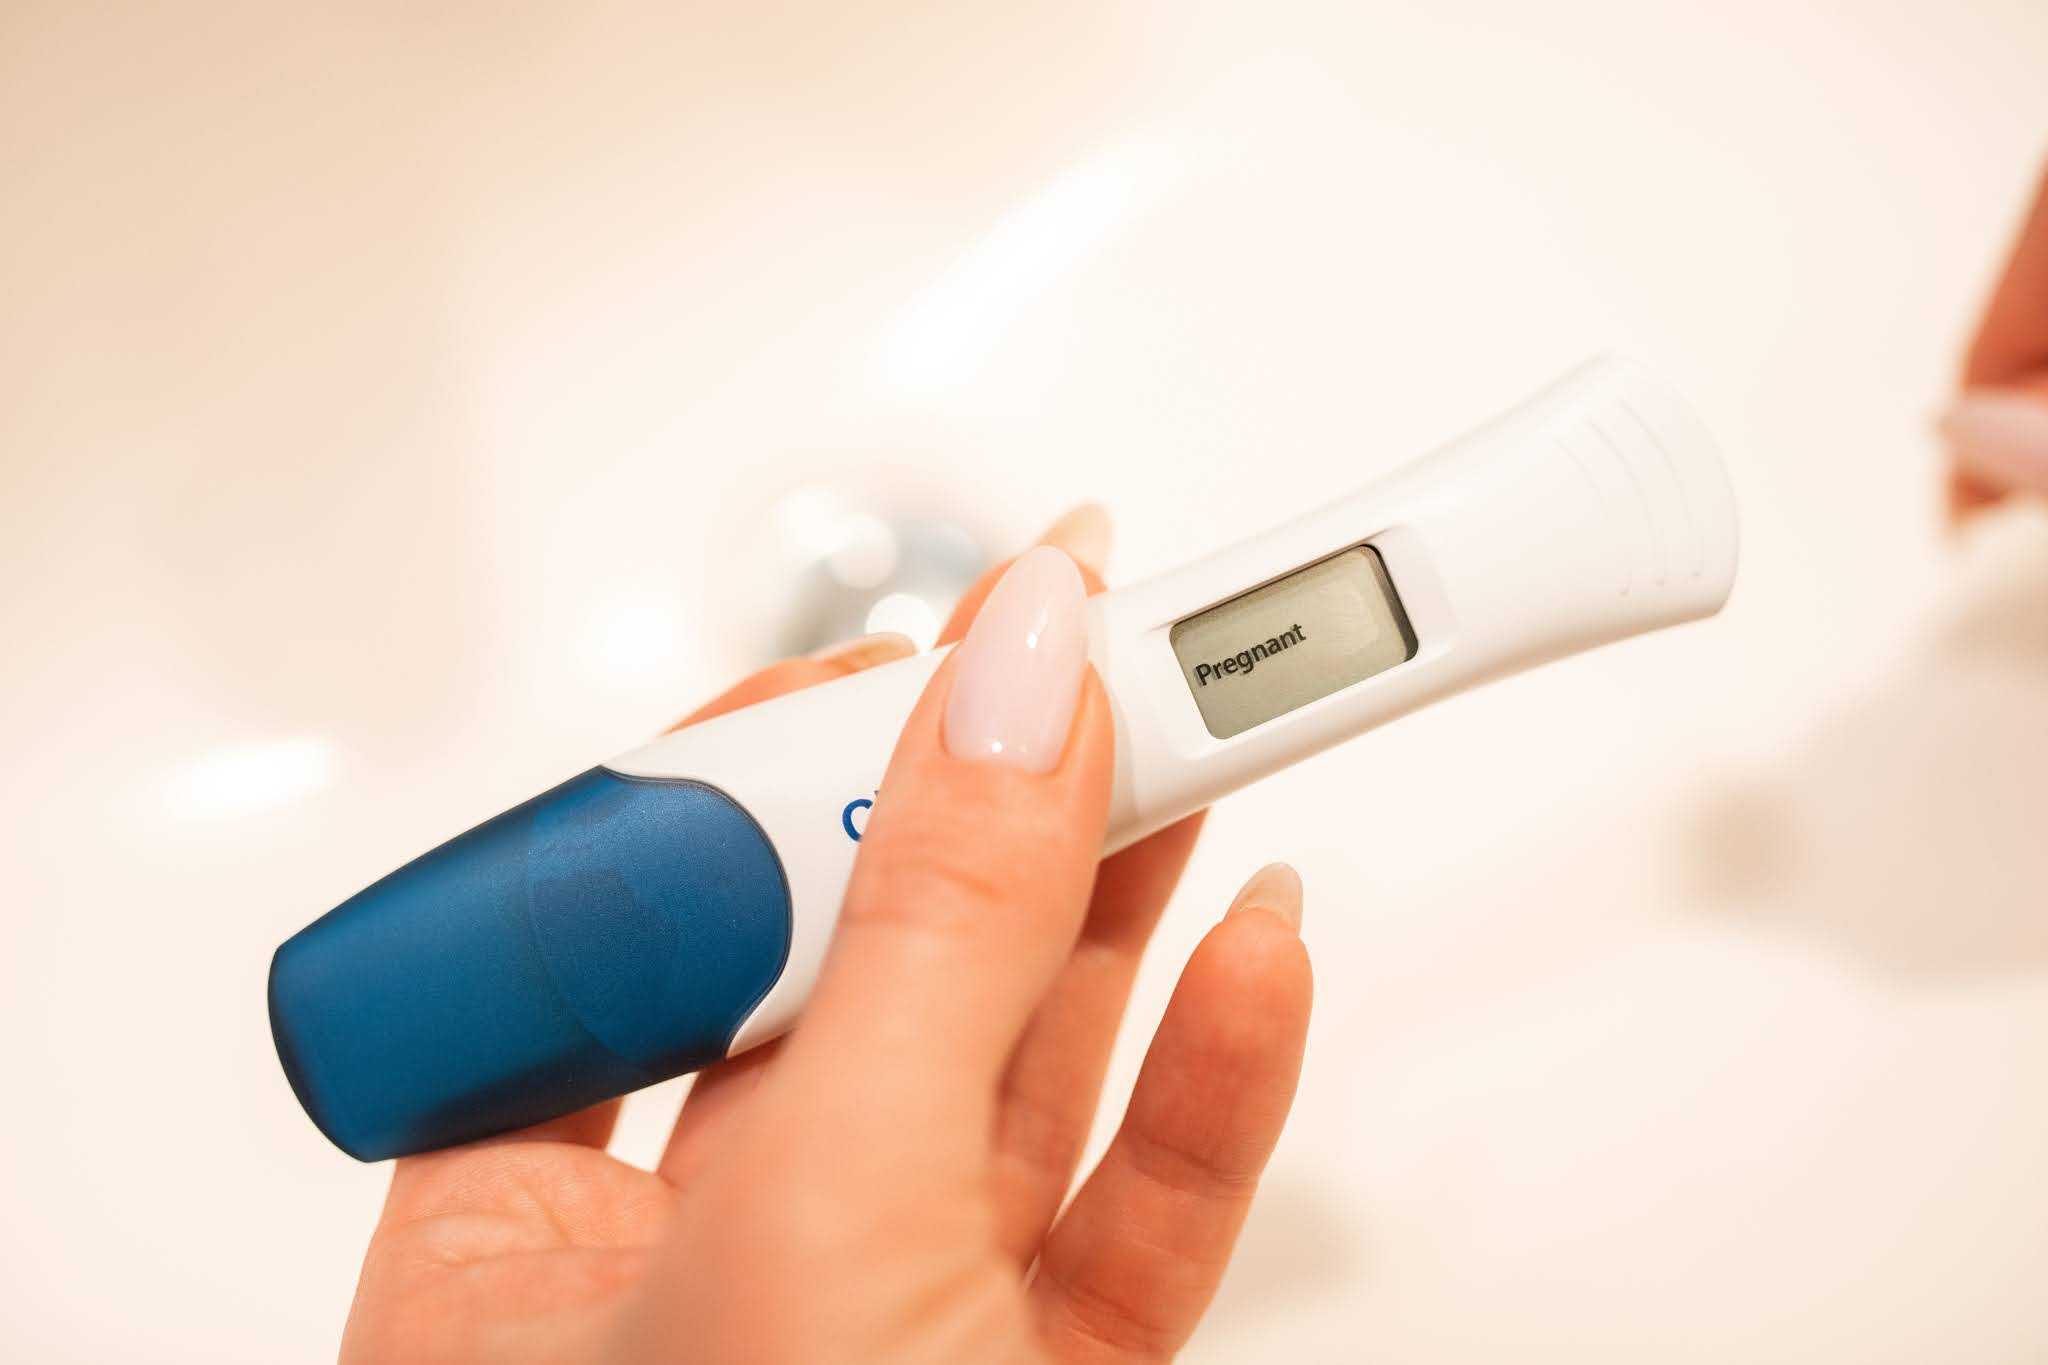 pregnancy test at home pregnancy test kit price salt pregnancy test when to take pregnancy test after how many days pregnancy can be confirmed by urine test when to take pregnancy test calculator pregnancy test kit urine pregnancy test